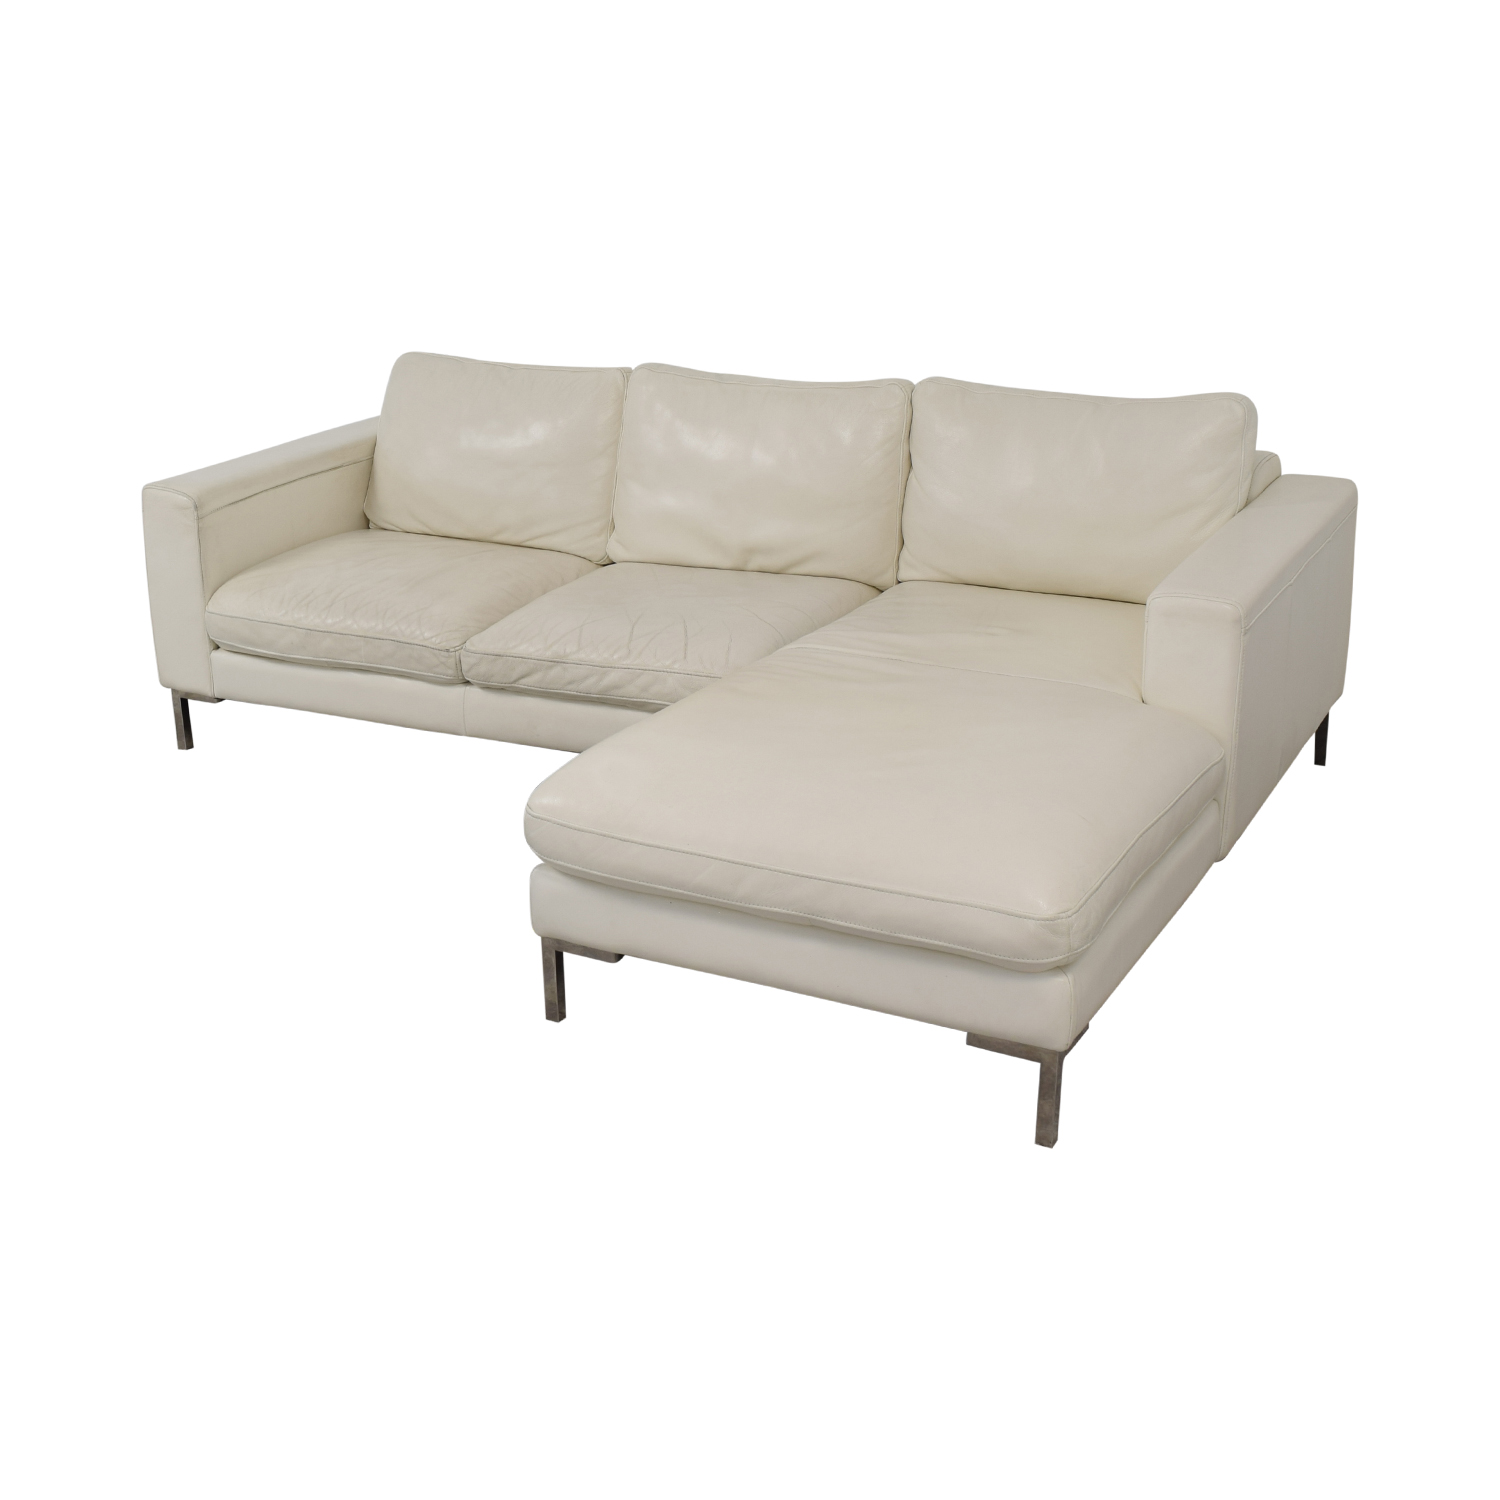 72% OFF - Modern Chaise Sectional Sofa / Sofas